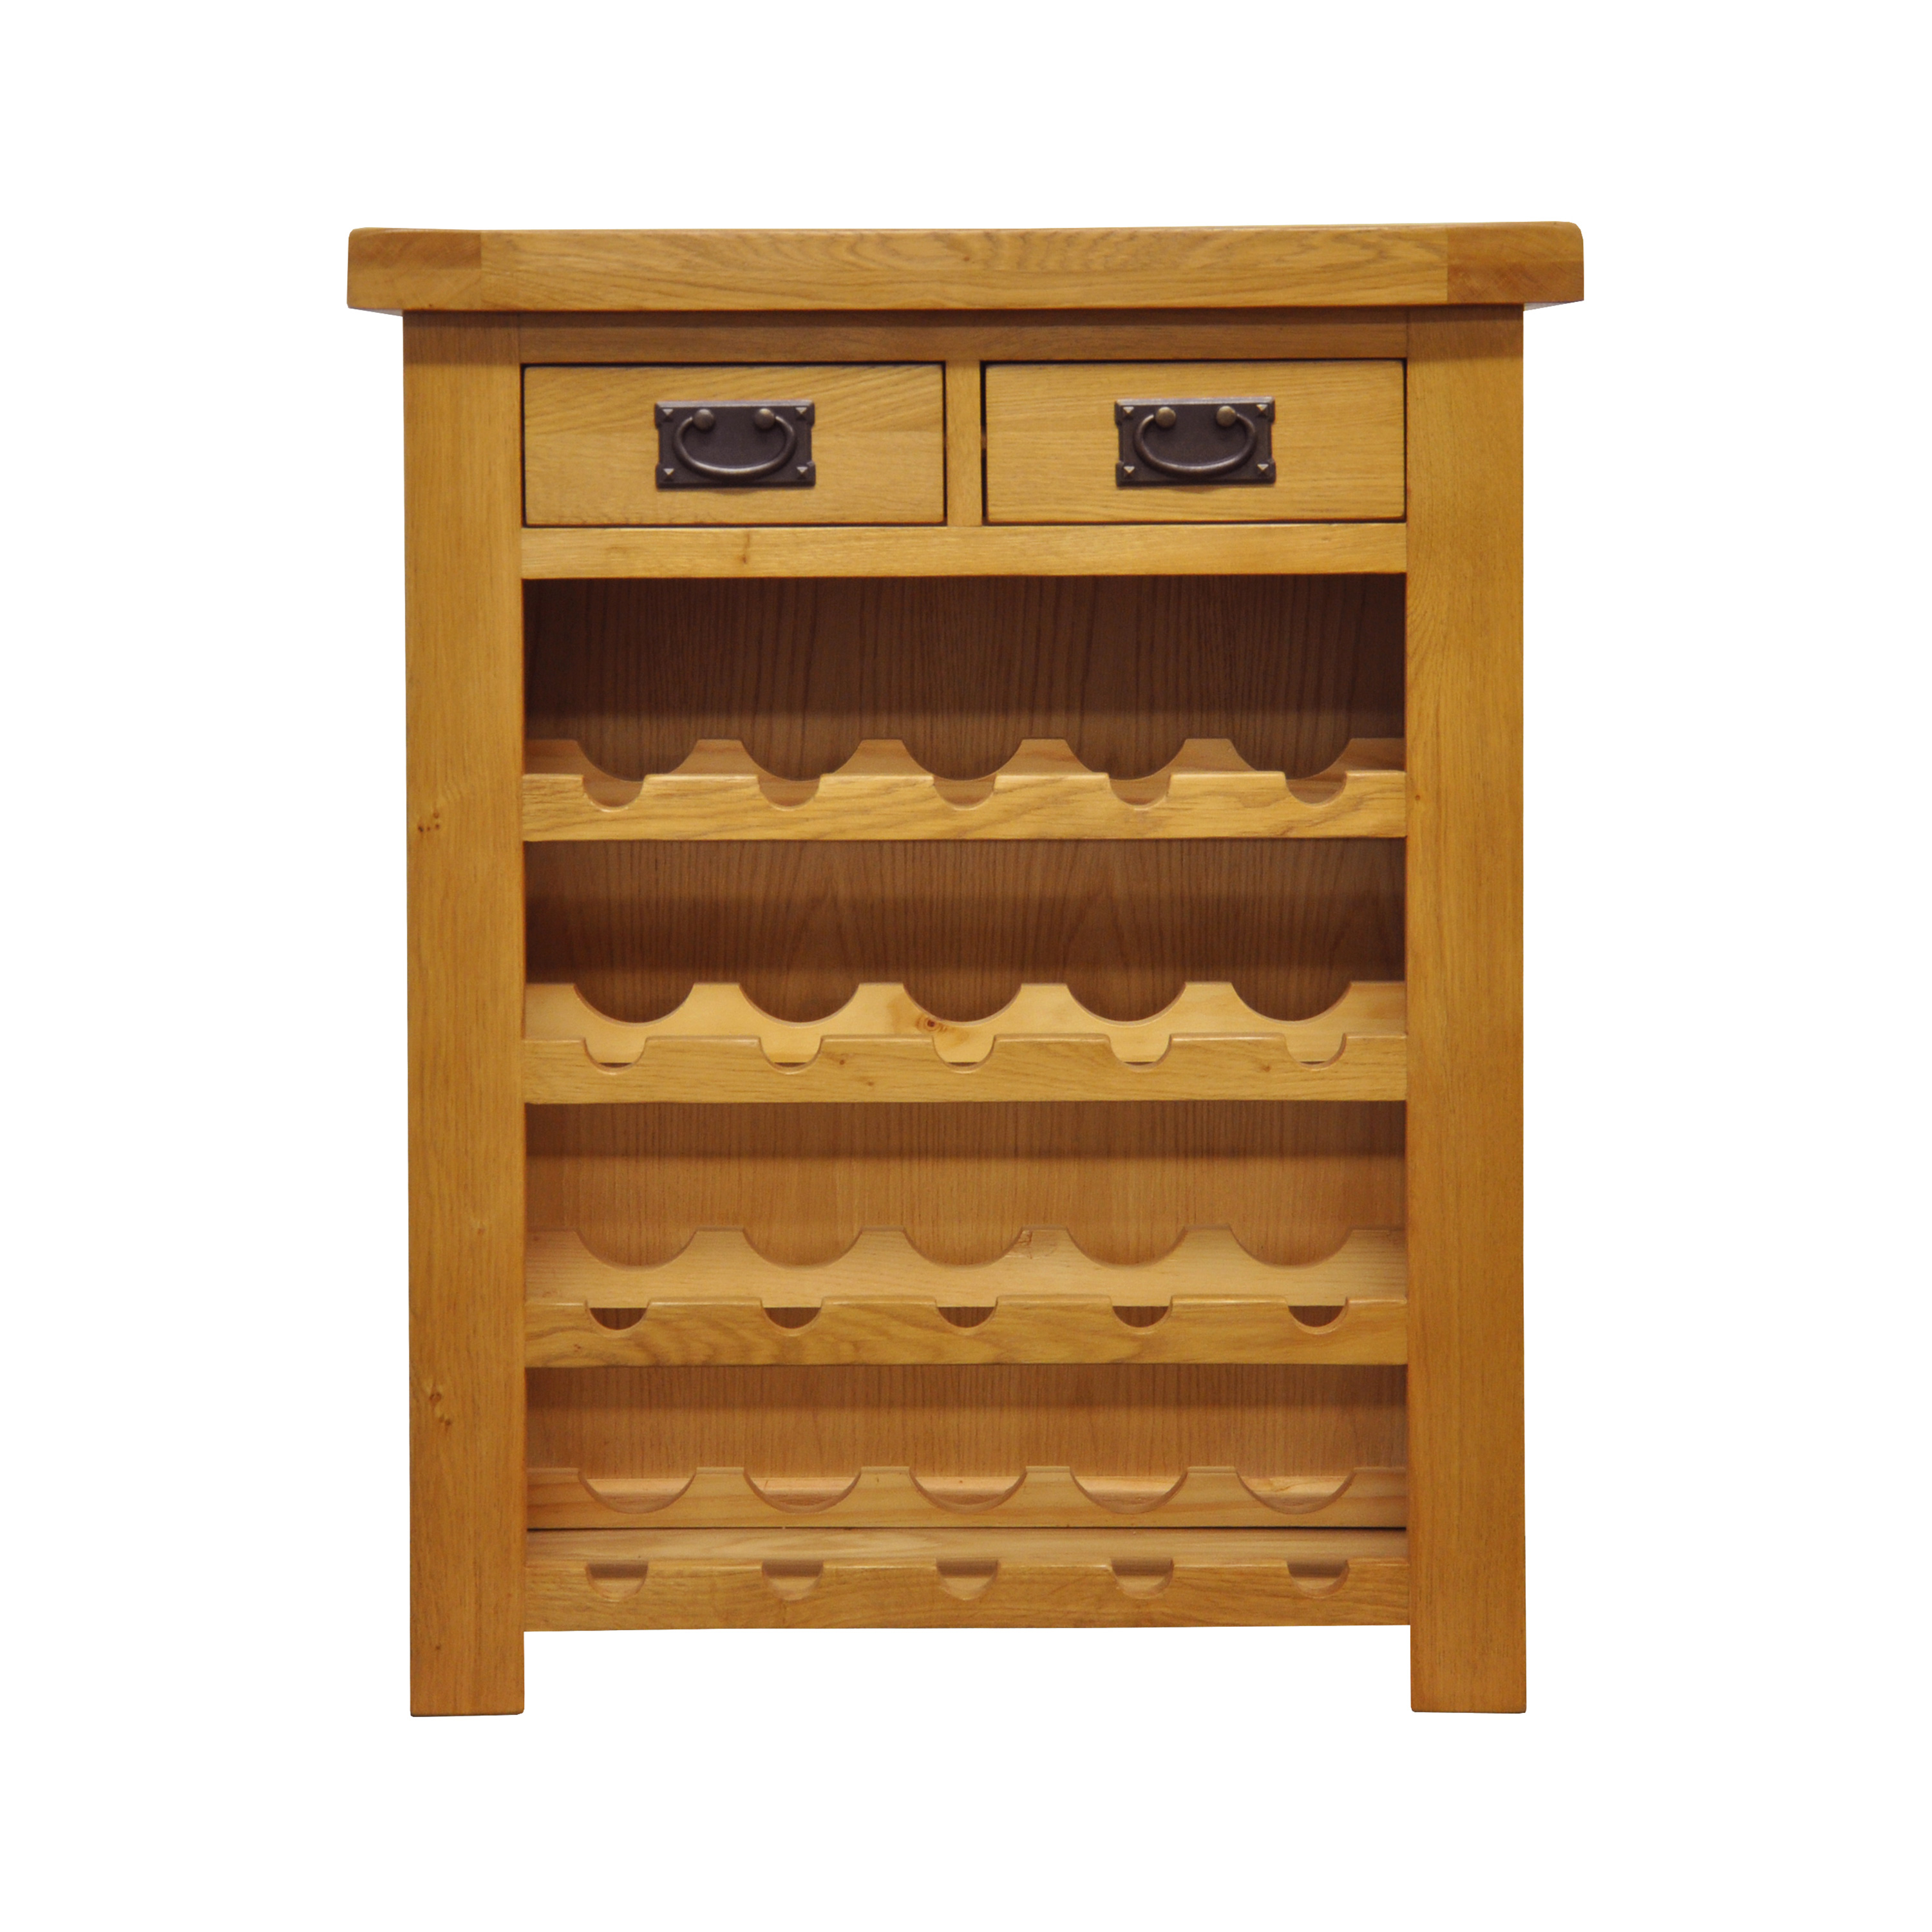 Buy cheap furniture wine rack compare furniture prices for Looking for cheap furniture